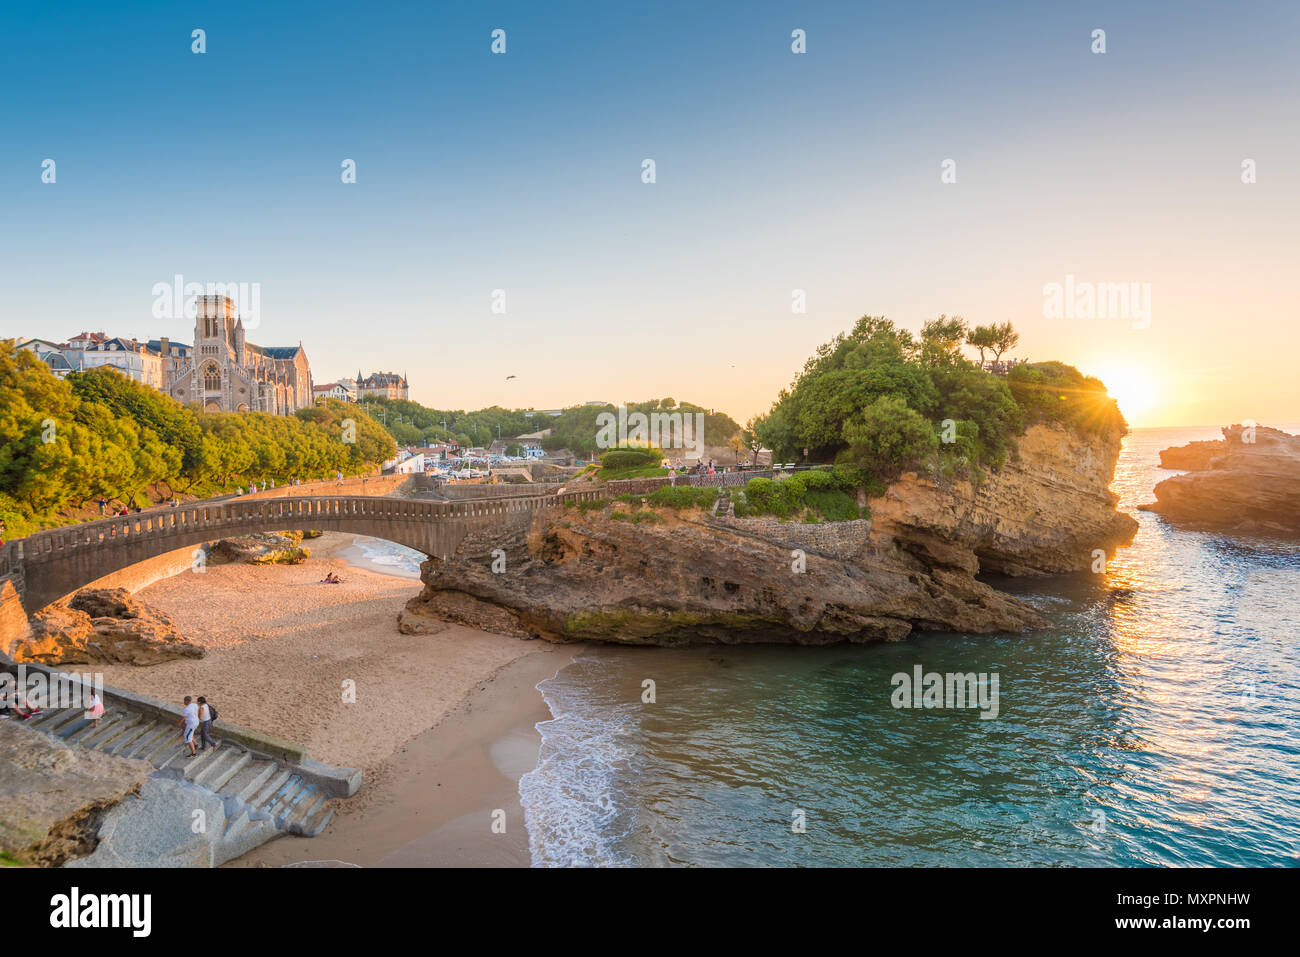 Landscape in Biarritz, France and the sun setting in the horizon over the ocean Stock Photo